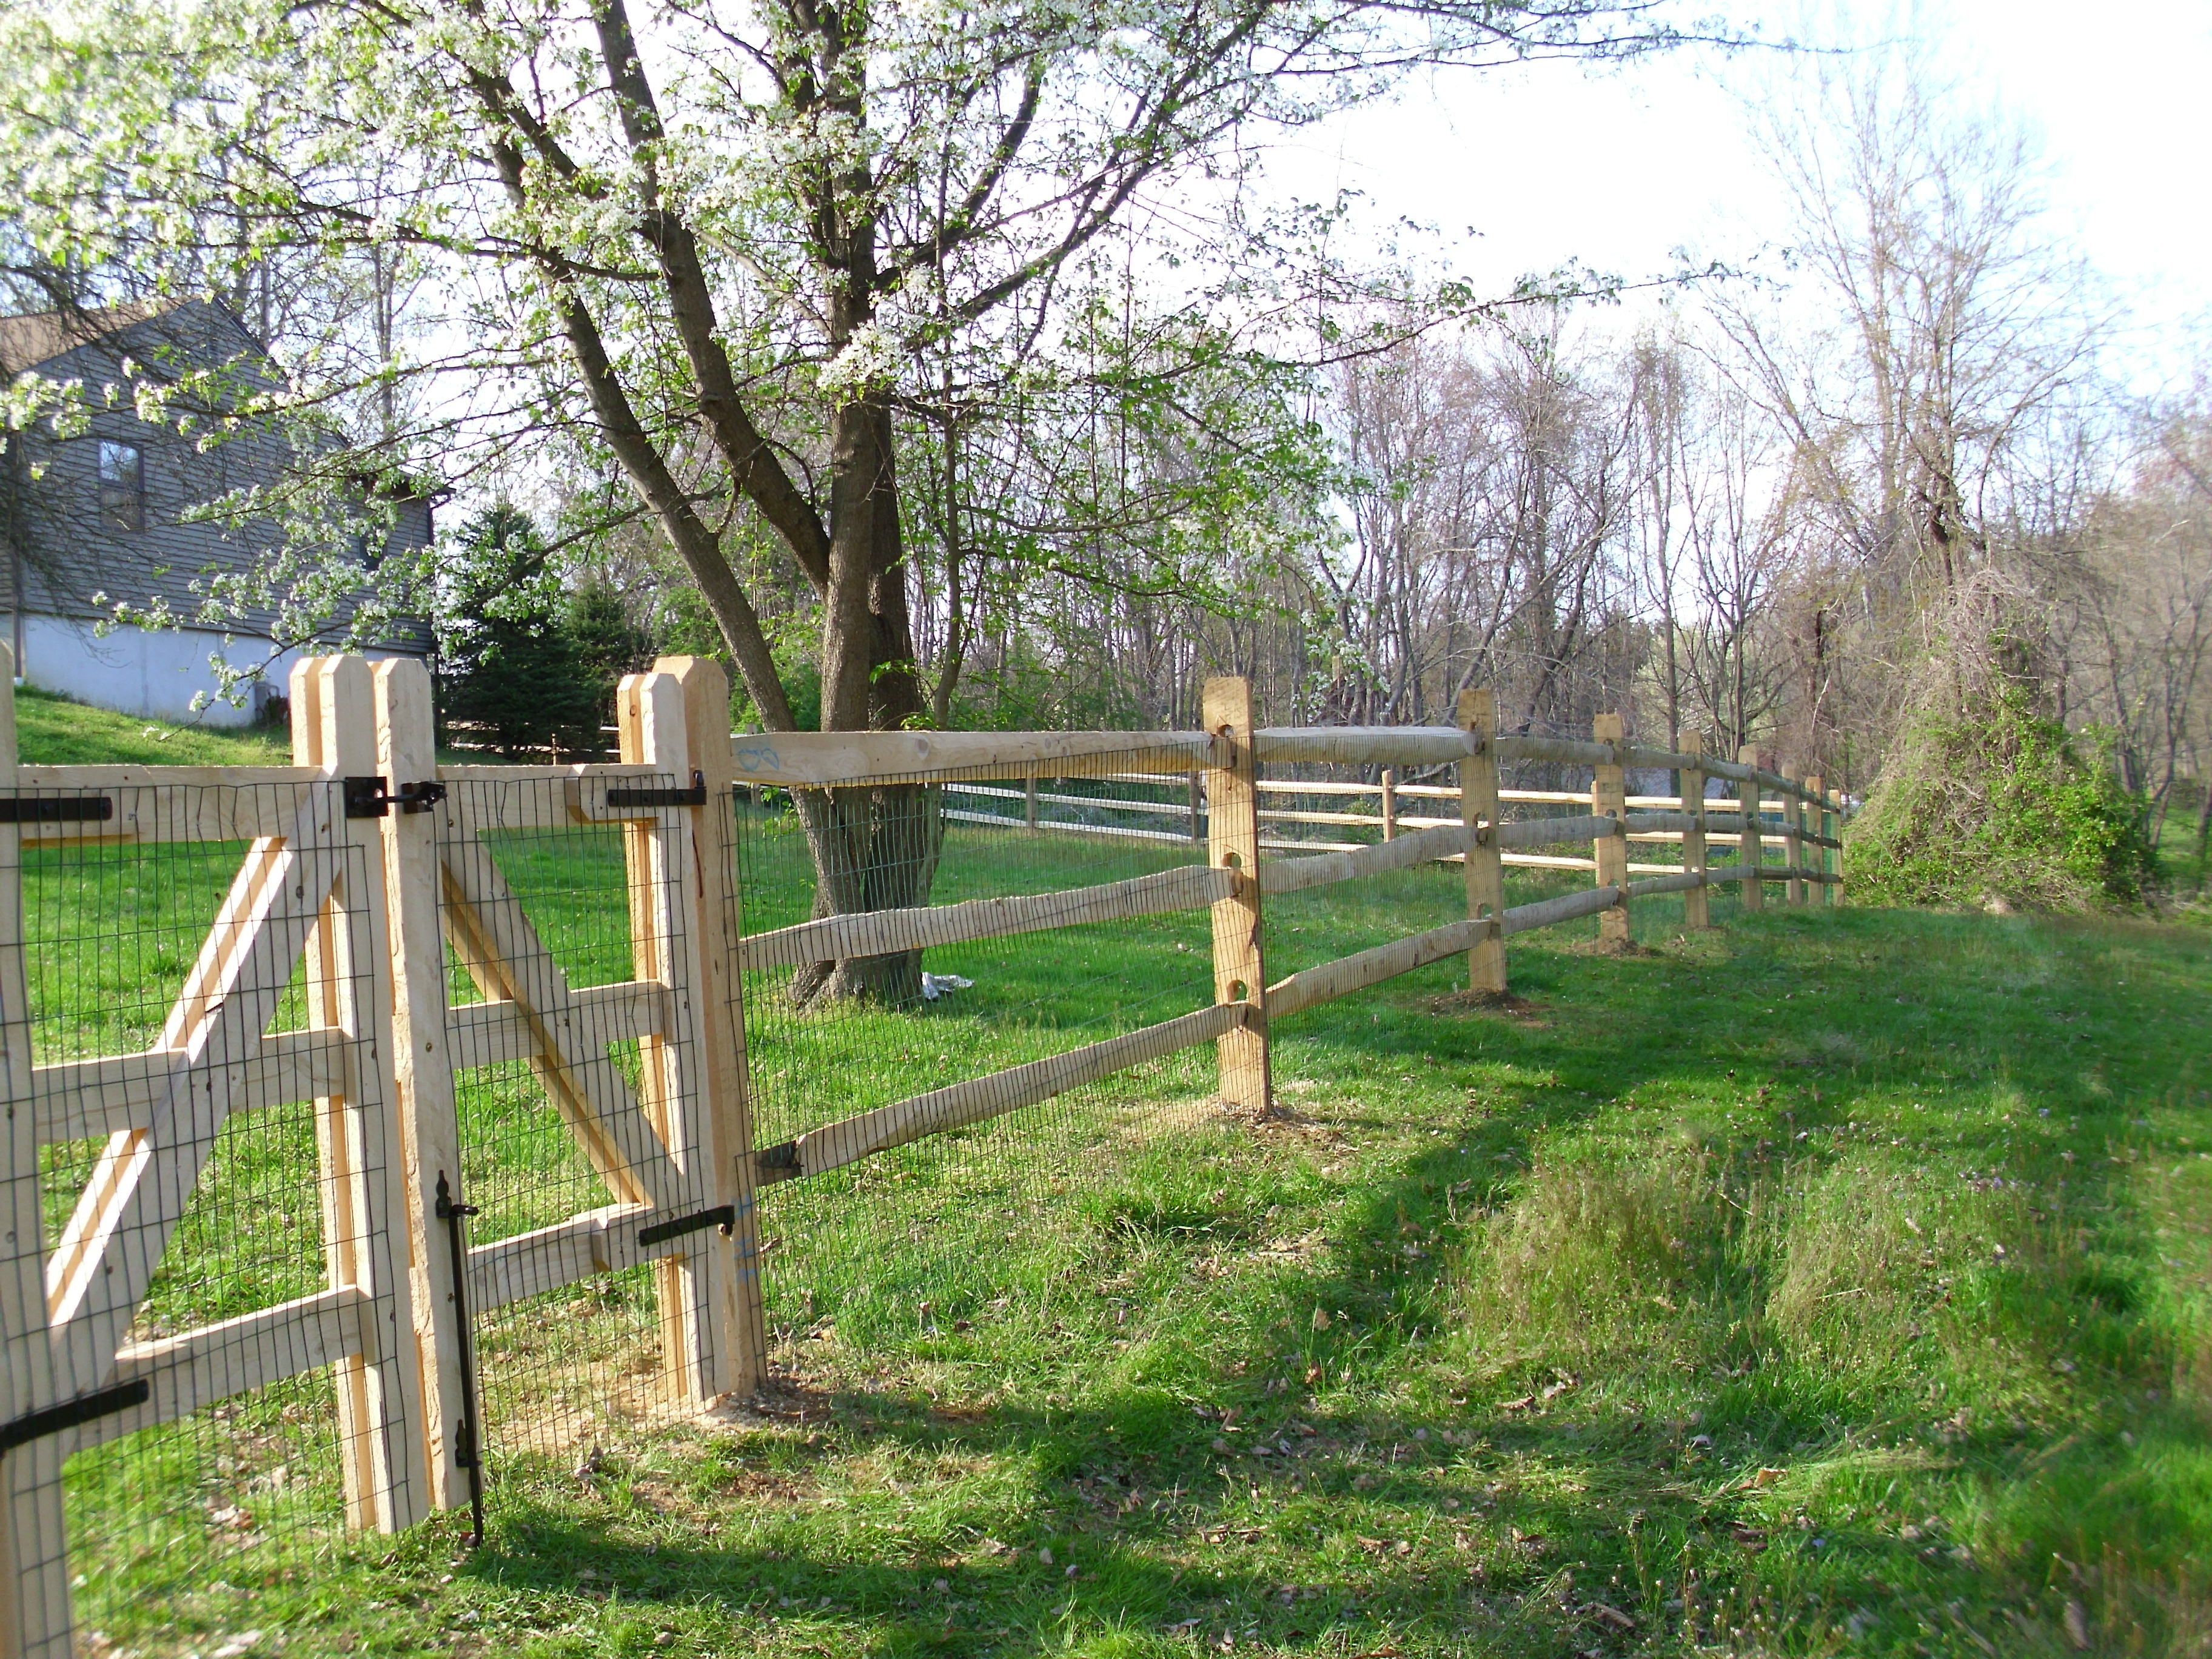 3 Rail Split Rail Fence With Black Wire Mesh And 8 Double Gate Split Rail Fence Fence Landscaping Pasture Fencing